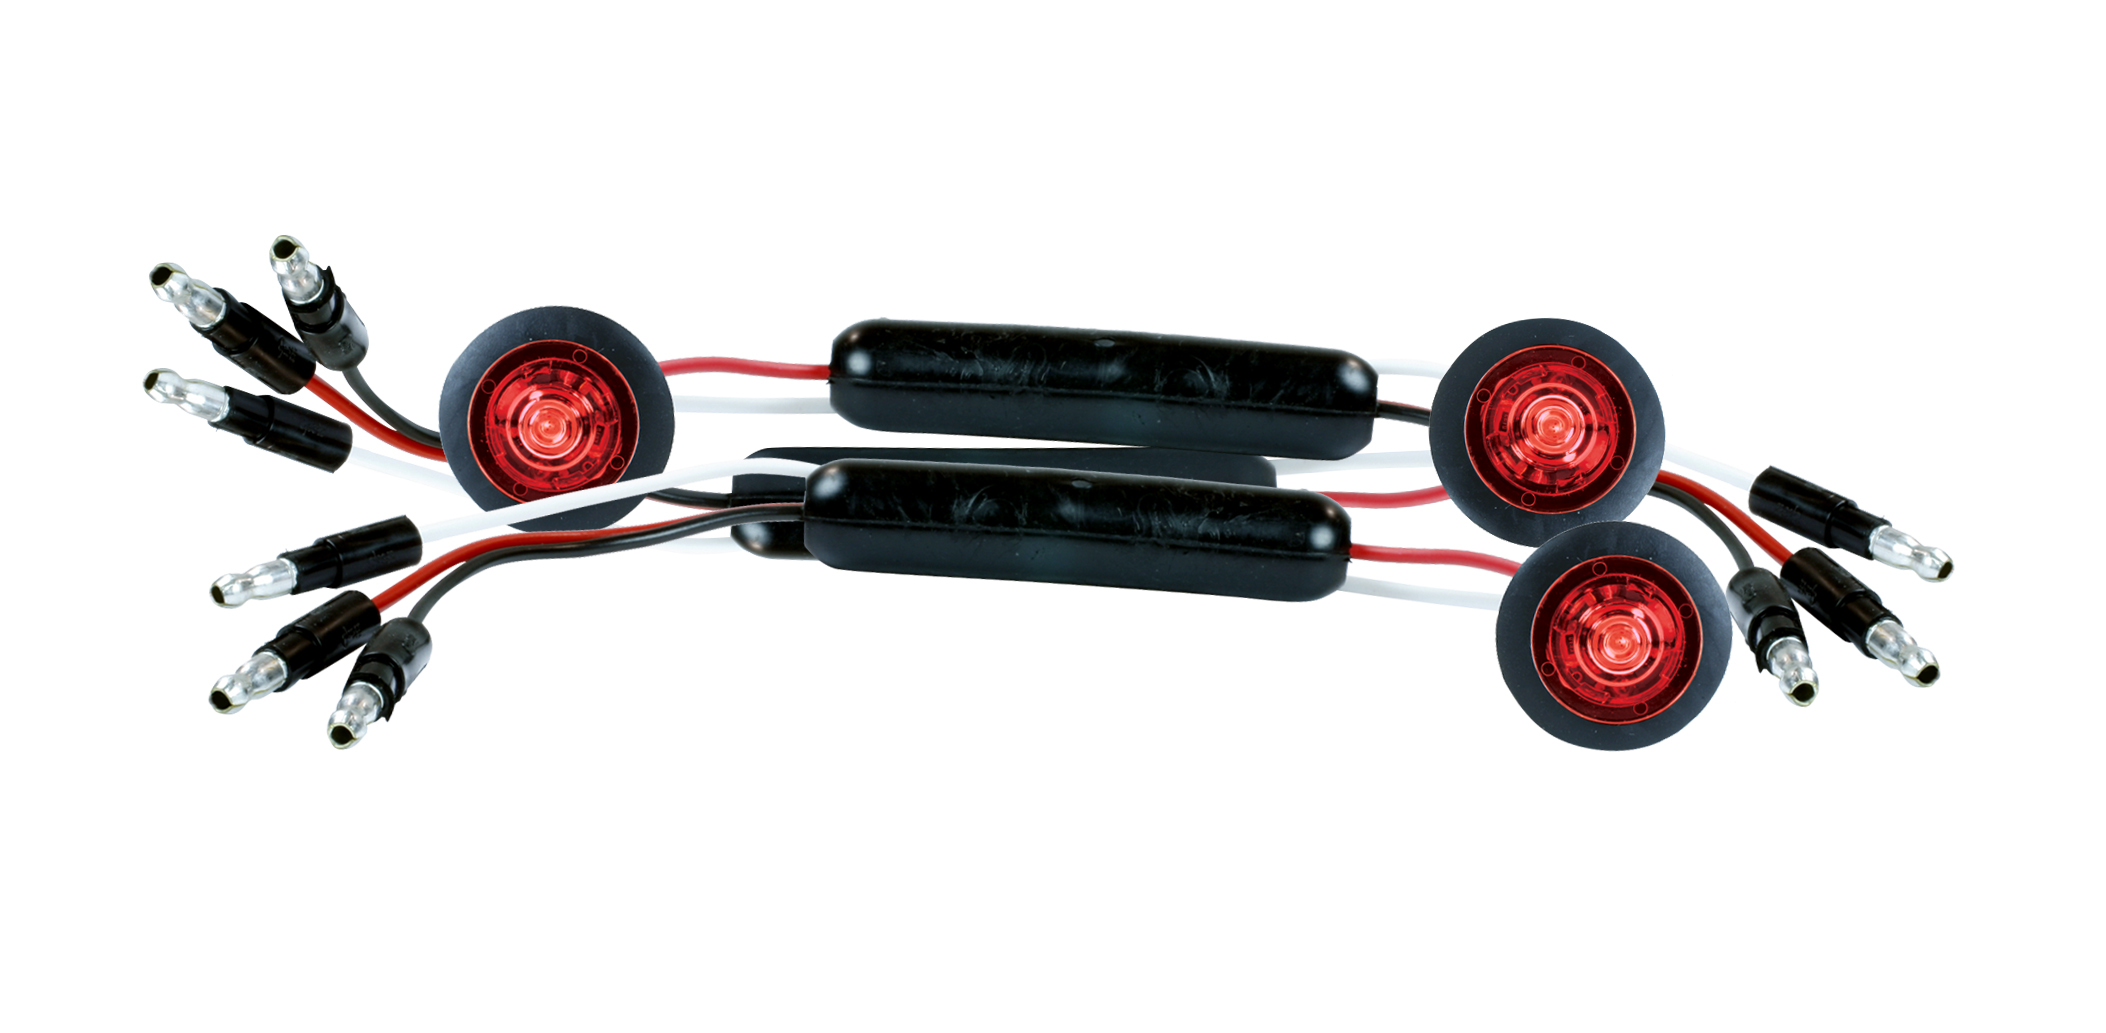 49362-3 – Dual Intensity MicroNova® Dot LED Clearance Marker Lights, Standard w/ Grommet, Red, Bulk Pack